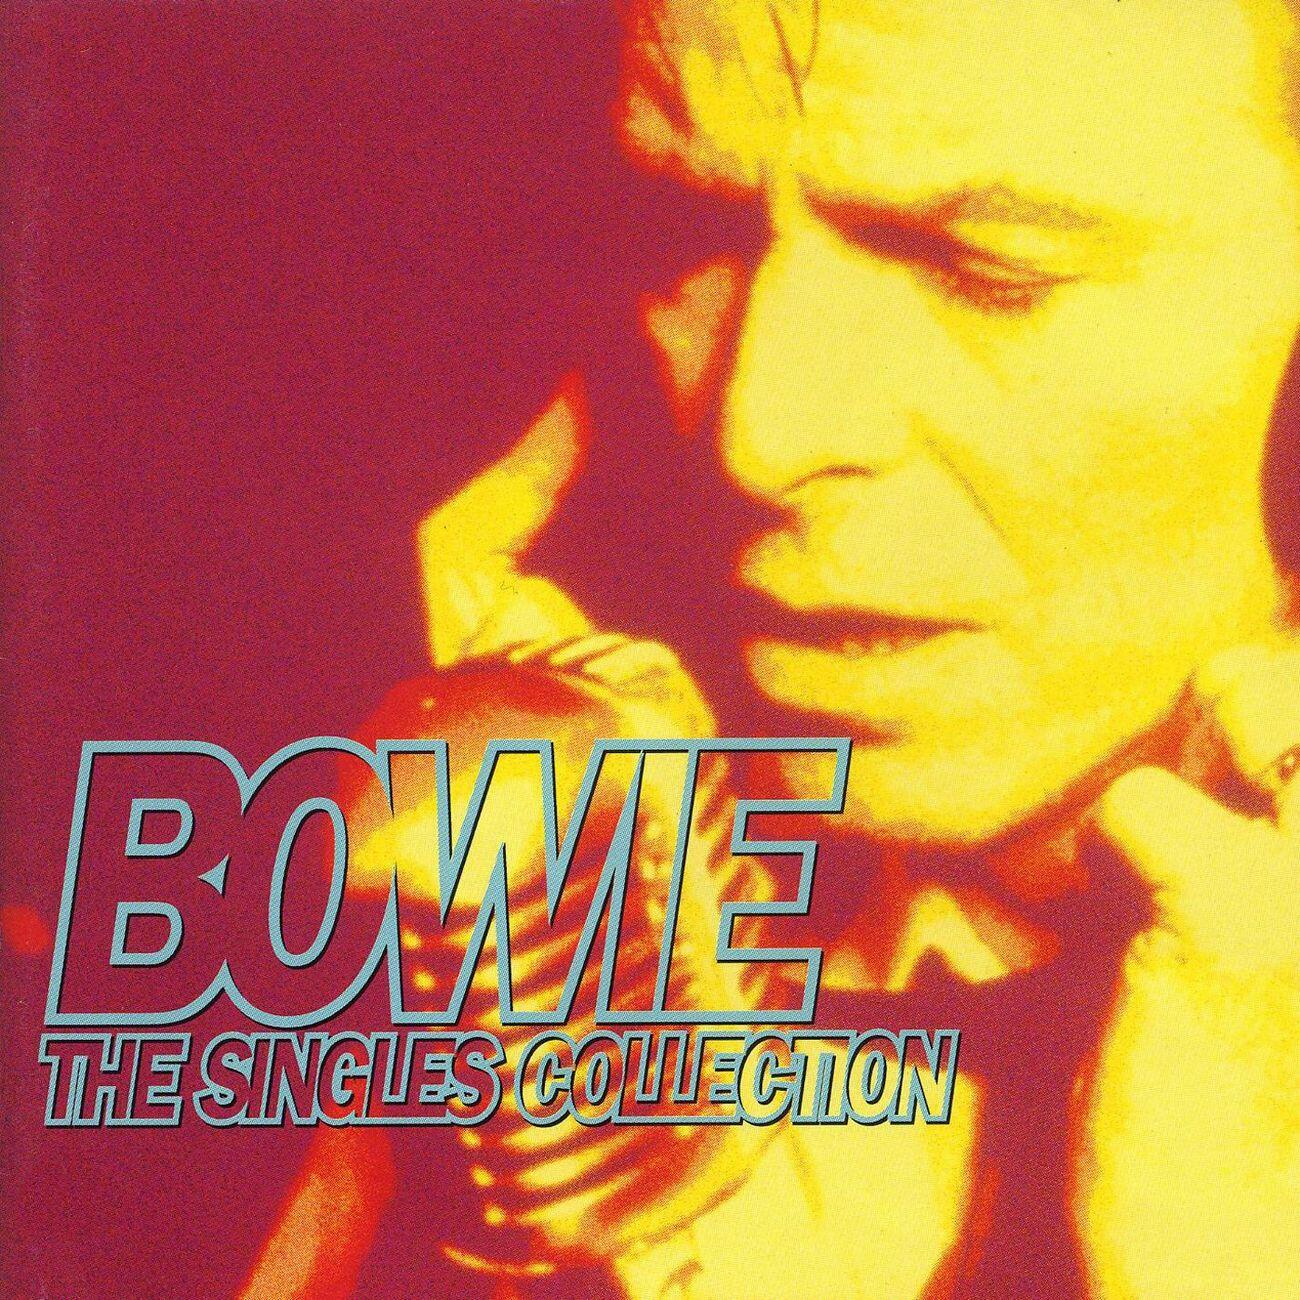 David Bowie - The Singles Collection | iHeartRadio